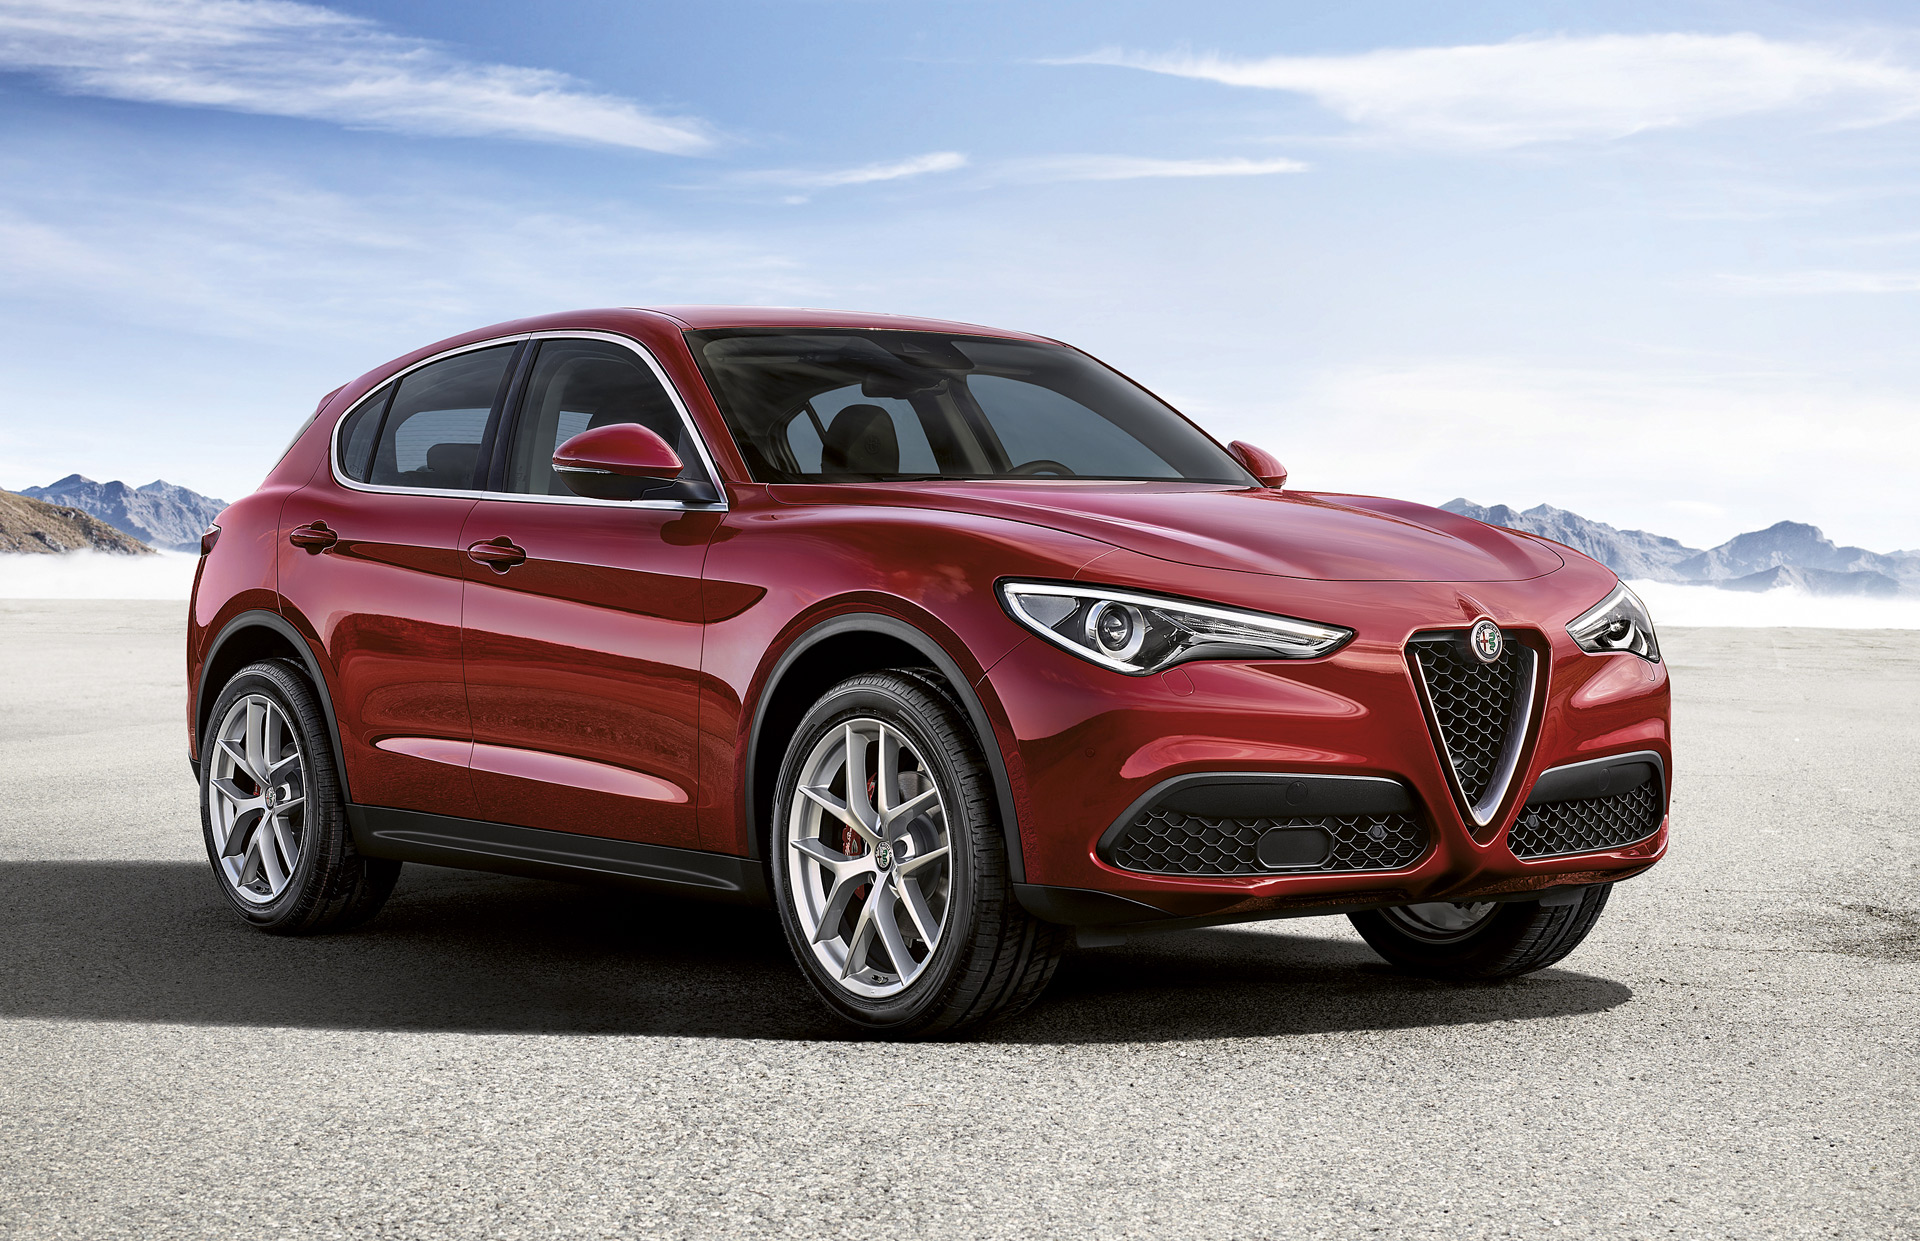 2018 alfa romeo stelvio priced from 42 990. Black Bedroom Furniture Sets. Home Design Ideas